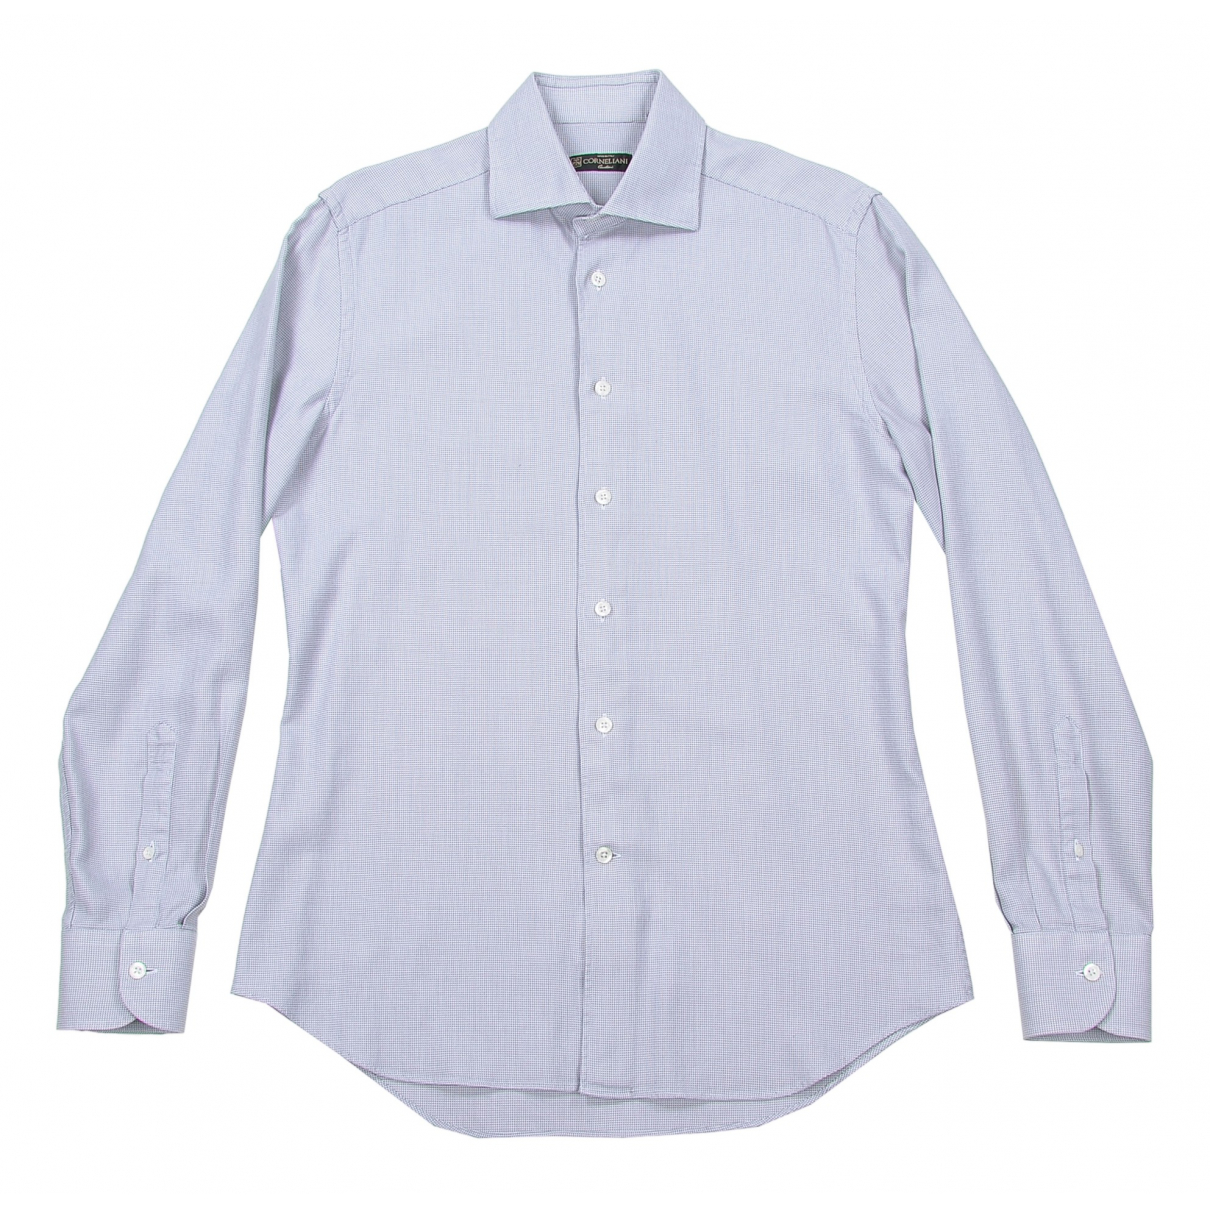 Corneliani \N Grey Cotton Shirts for Men 38 EU (tour de cou / collar)